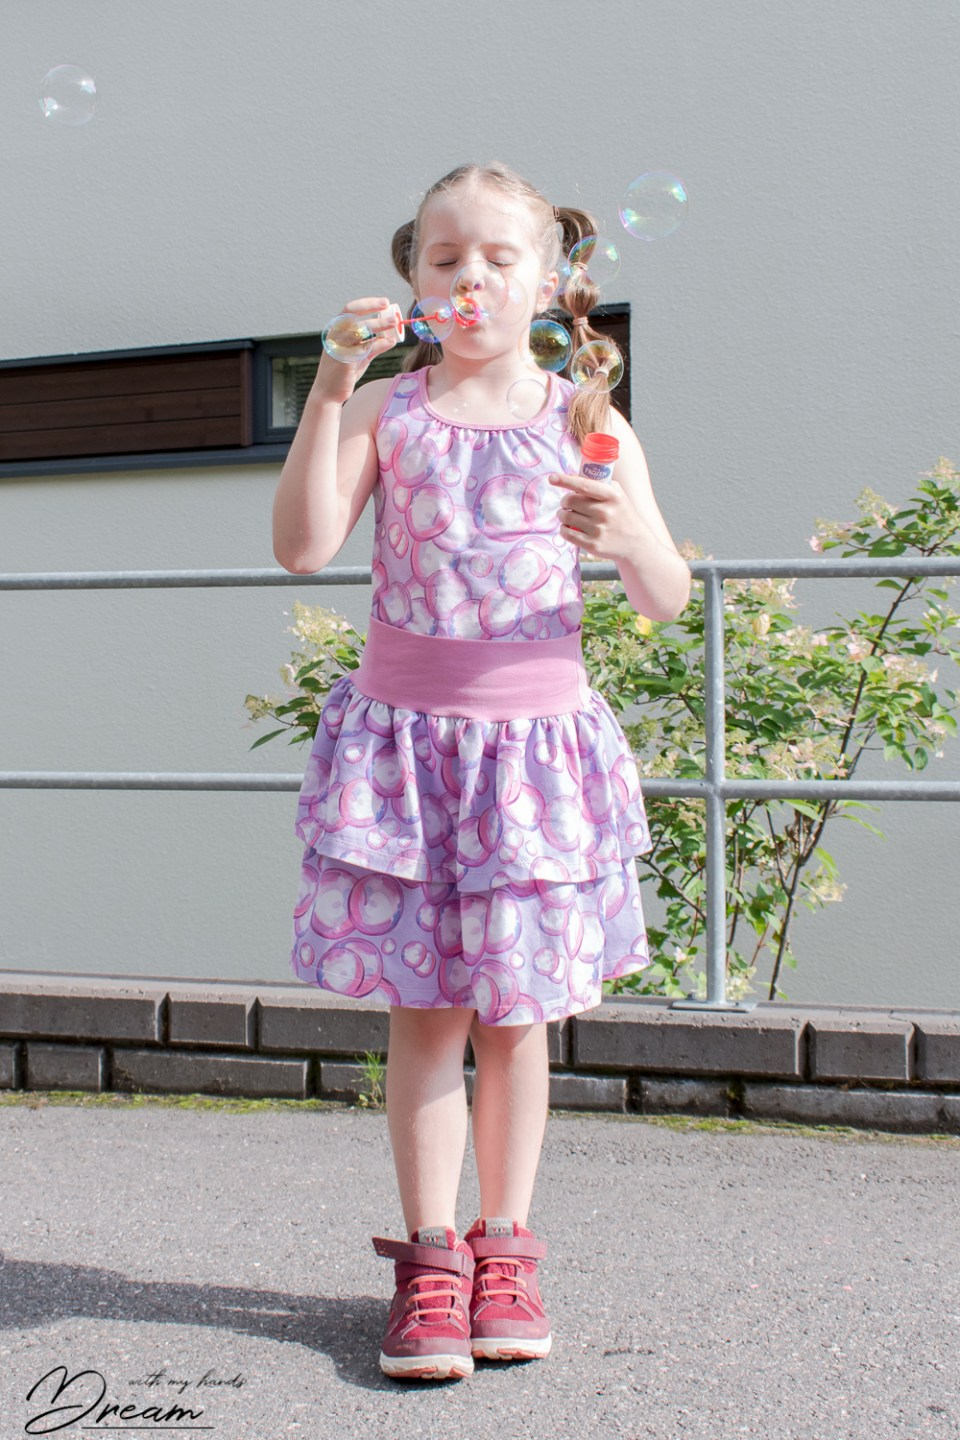 Bubble jersey outfit with Ottobre 4/2011 34. Glow-worm top.